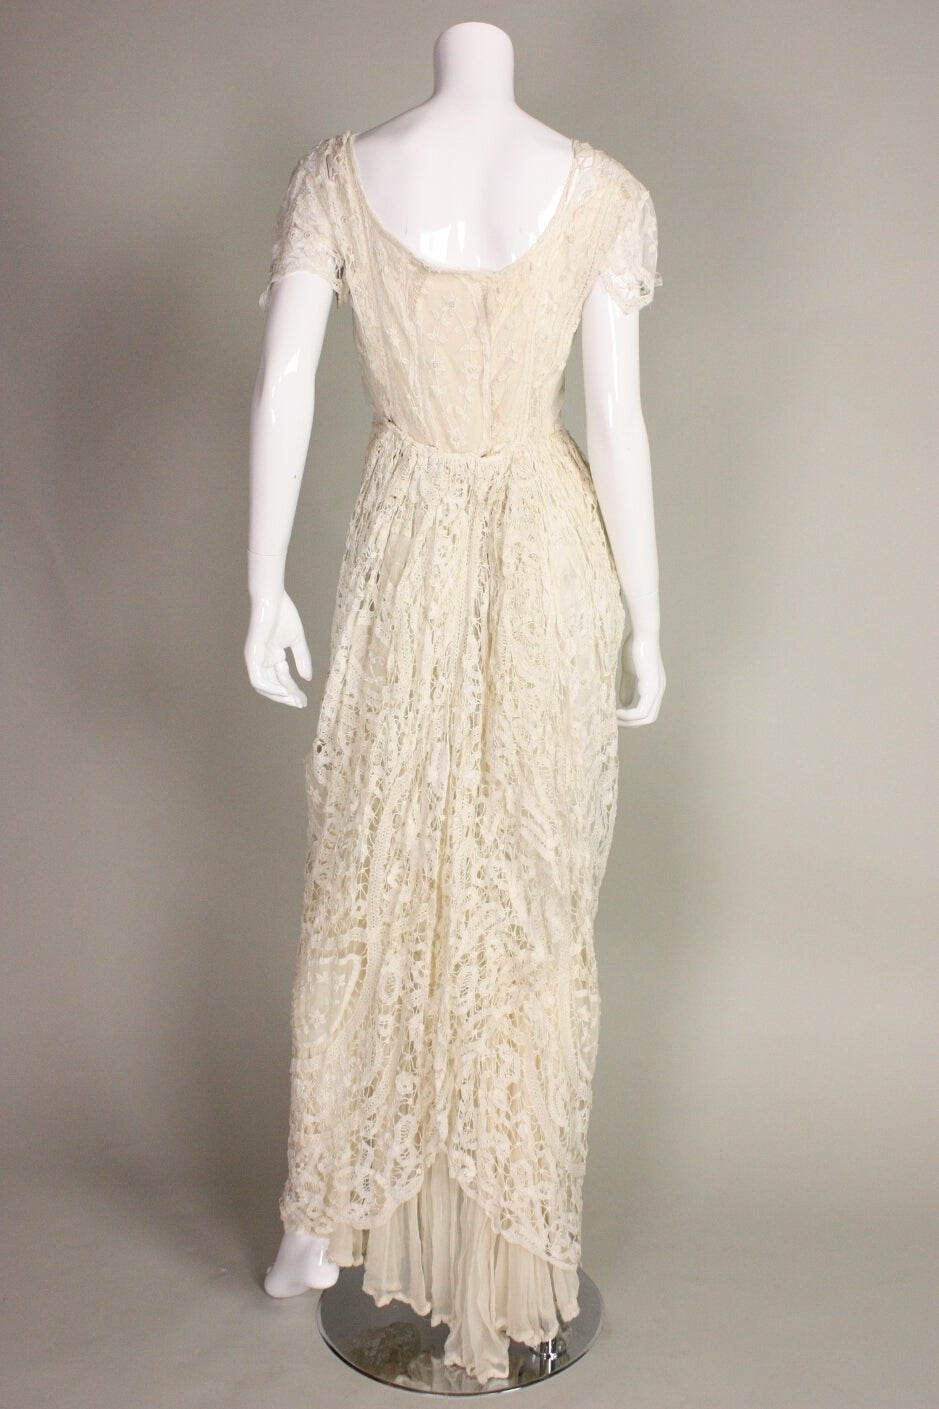 Edwardian Battenburg Lace Dress In Excellent Condition For Sale In Los Angeles, CA